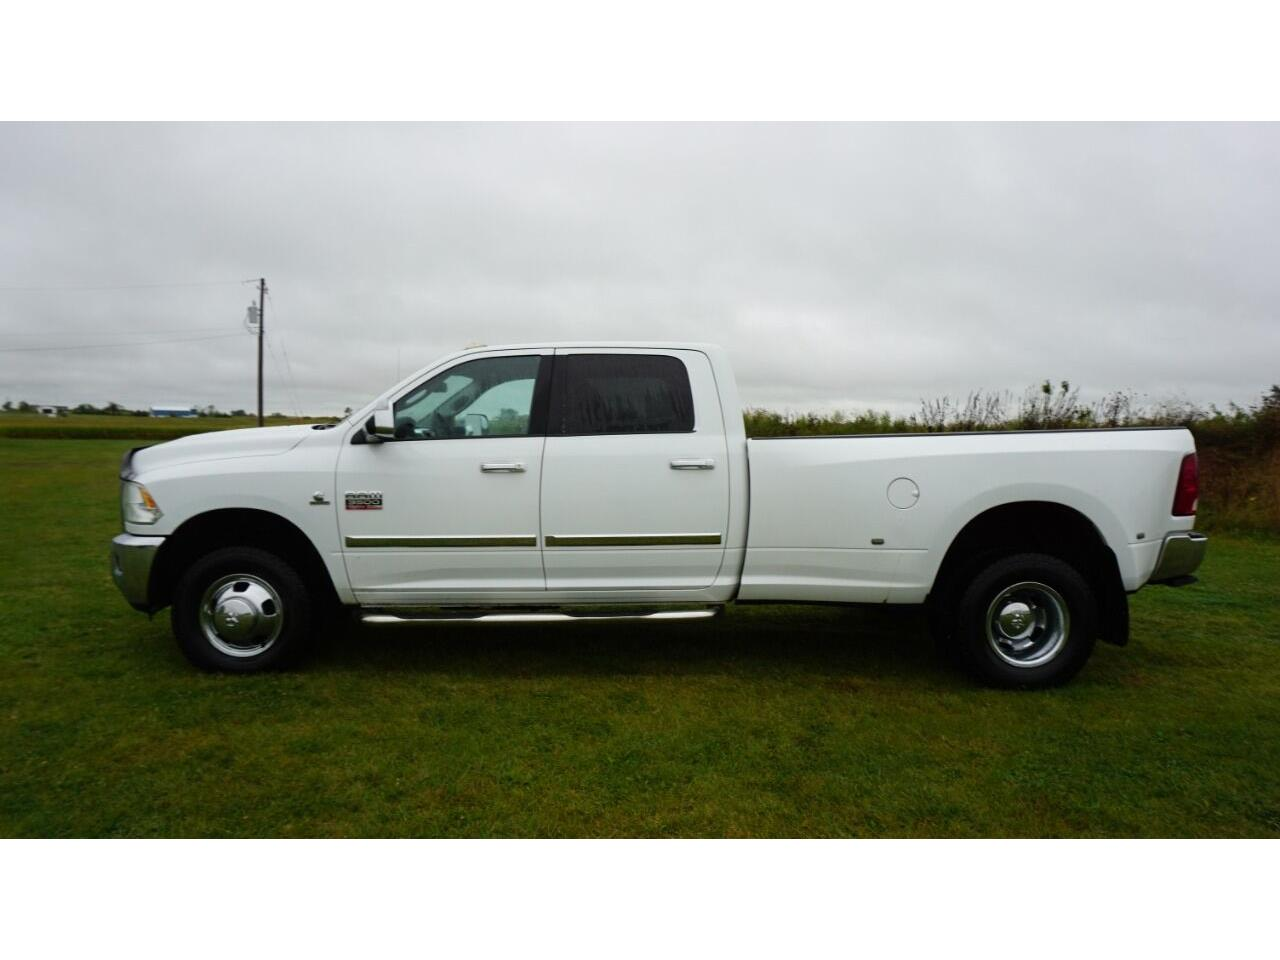 2011 Dodge Ram 3500 (CC-1389713) for sale in Clarence, Iowa